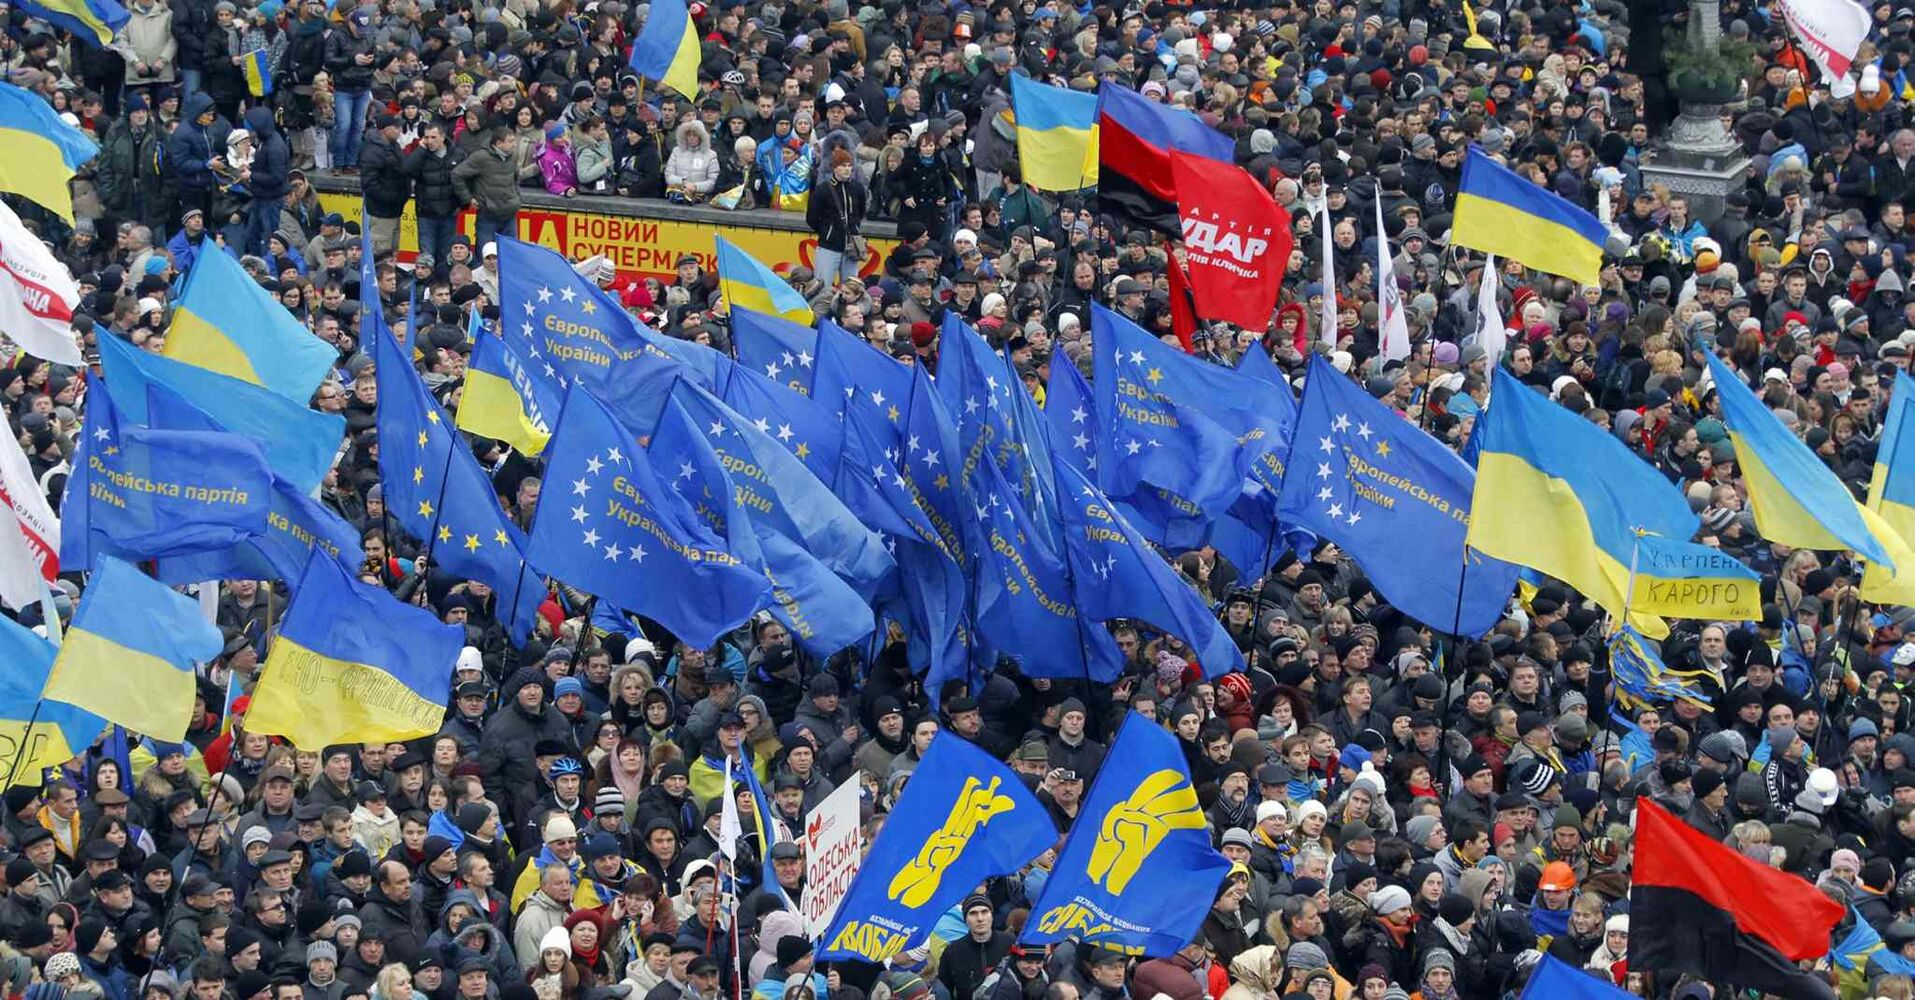 Demonstrators wave flags as they gather during a rally in downtown Kiev, Ukraine, on Sunday. As many as 100,000 demonstrators chased away police to rally in the center of Ukraine's capital on Sunday, defying a government ban on protests on Independence Square, in the biggest show of anger over the president's refusal to sign an agreement with the European Union.  (CP)